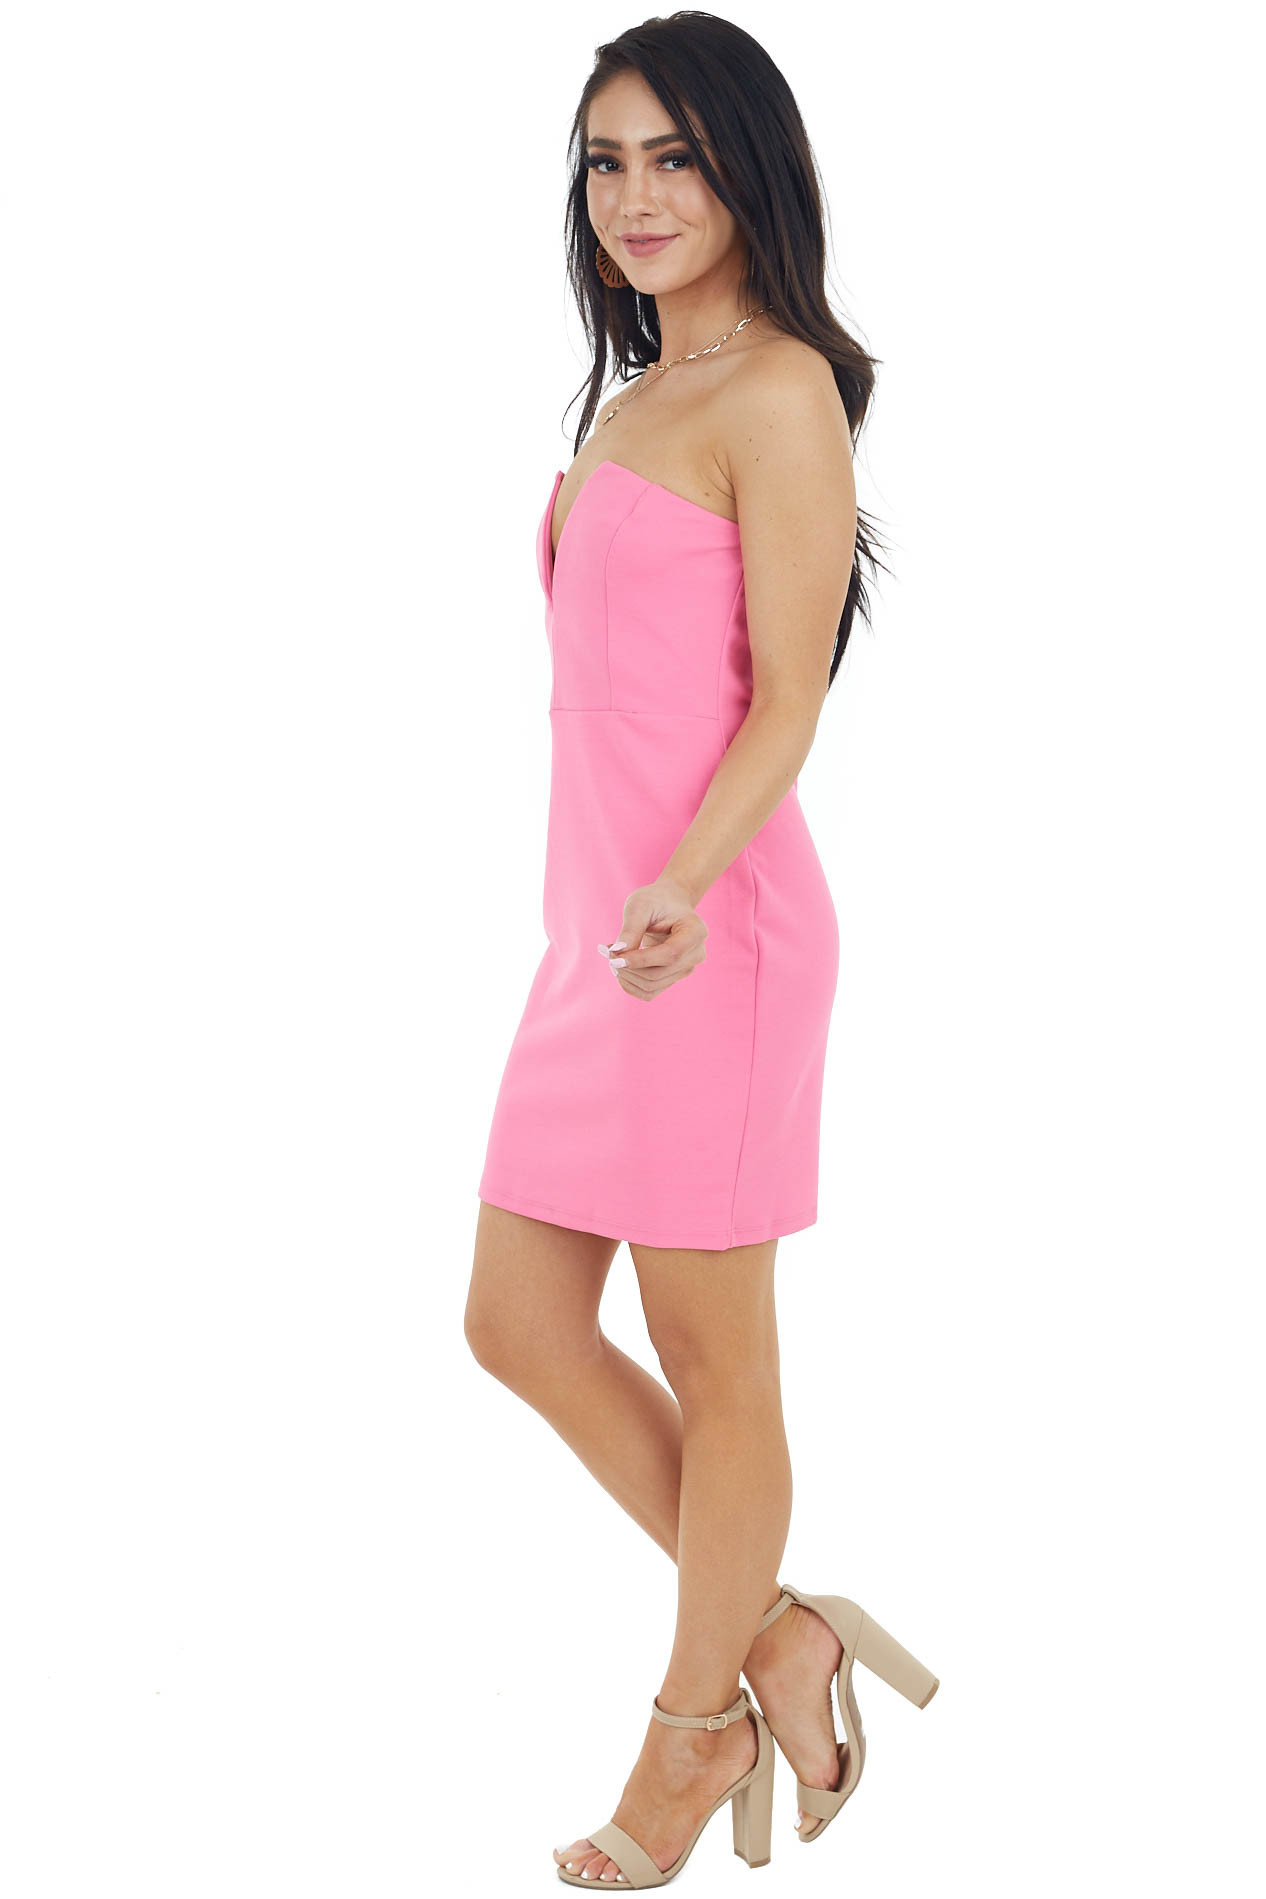 Pink Strapless Bodycon Mini Dress with Deep V Cutout Detail